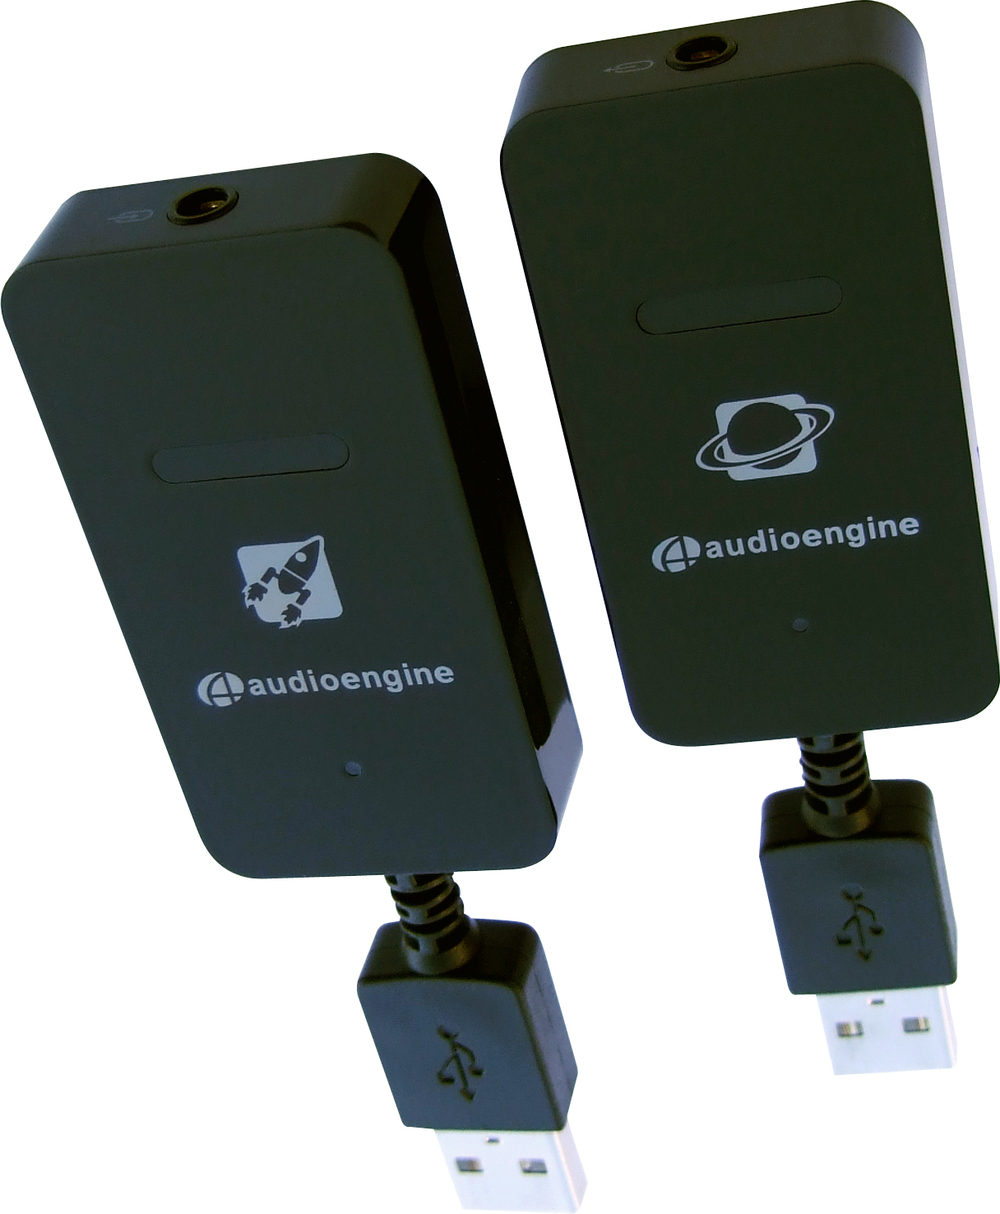 Audioengine W3 Wireless 16-Bit Audio Adapter Sender and Receiver